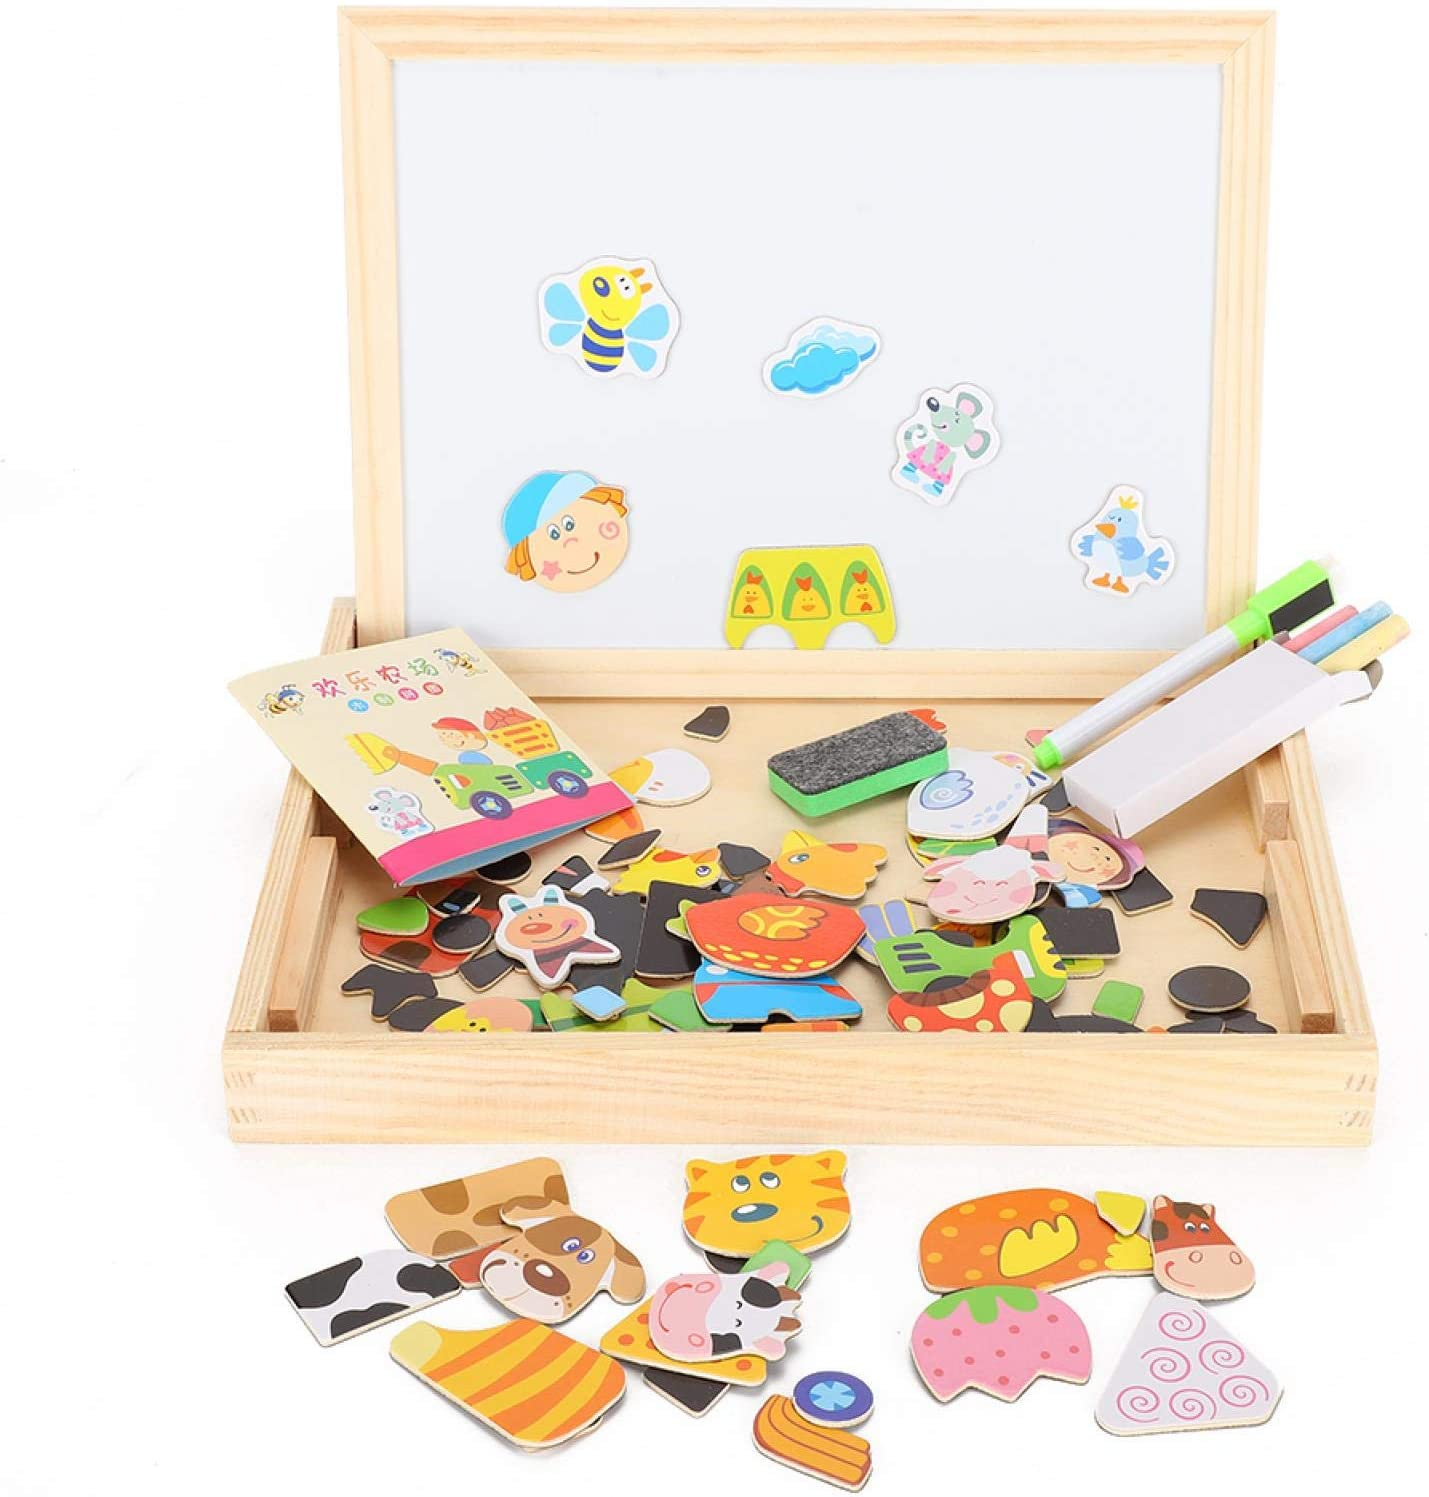 QYSZYG Double-Sided Magnetic Credence It is very popular Drawing Board Children's Edu Puzzle